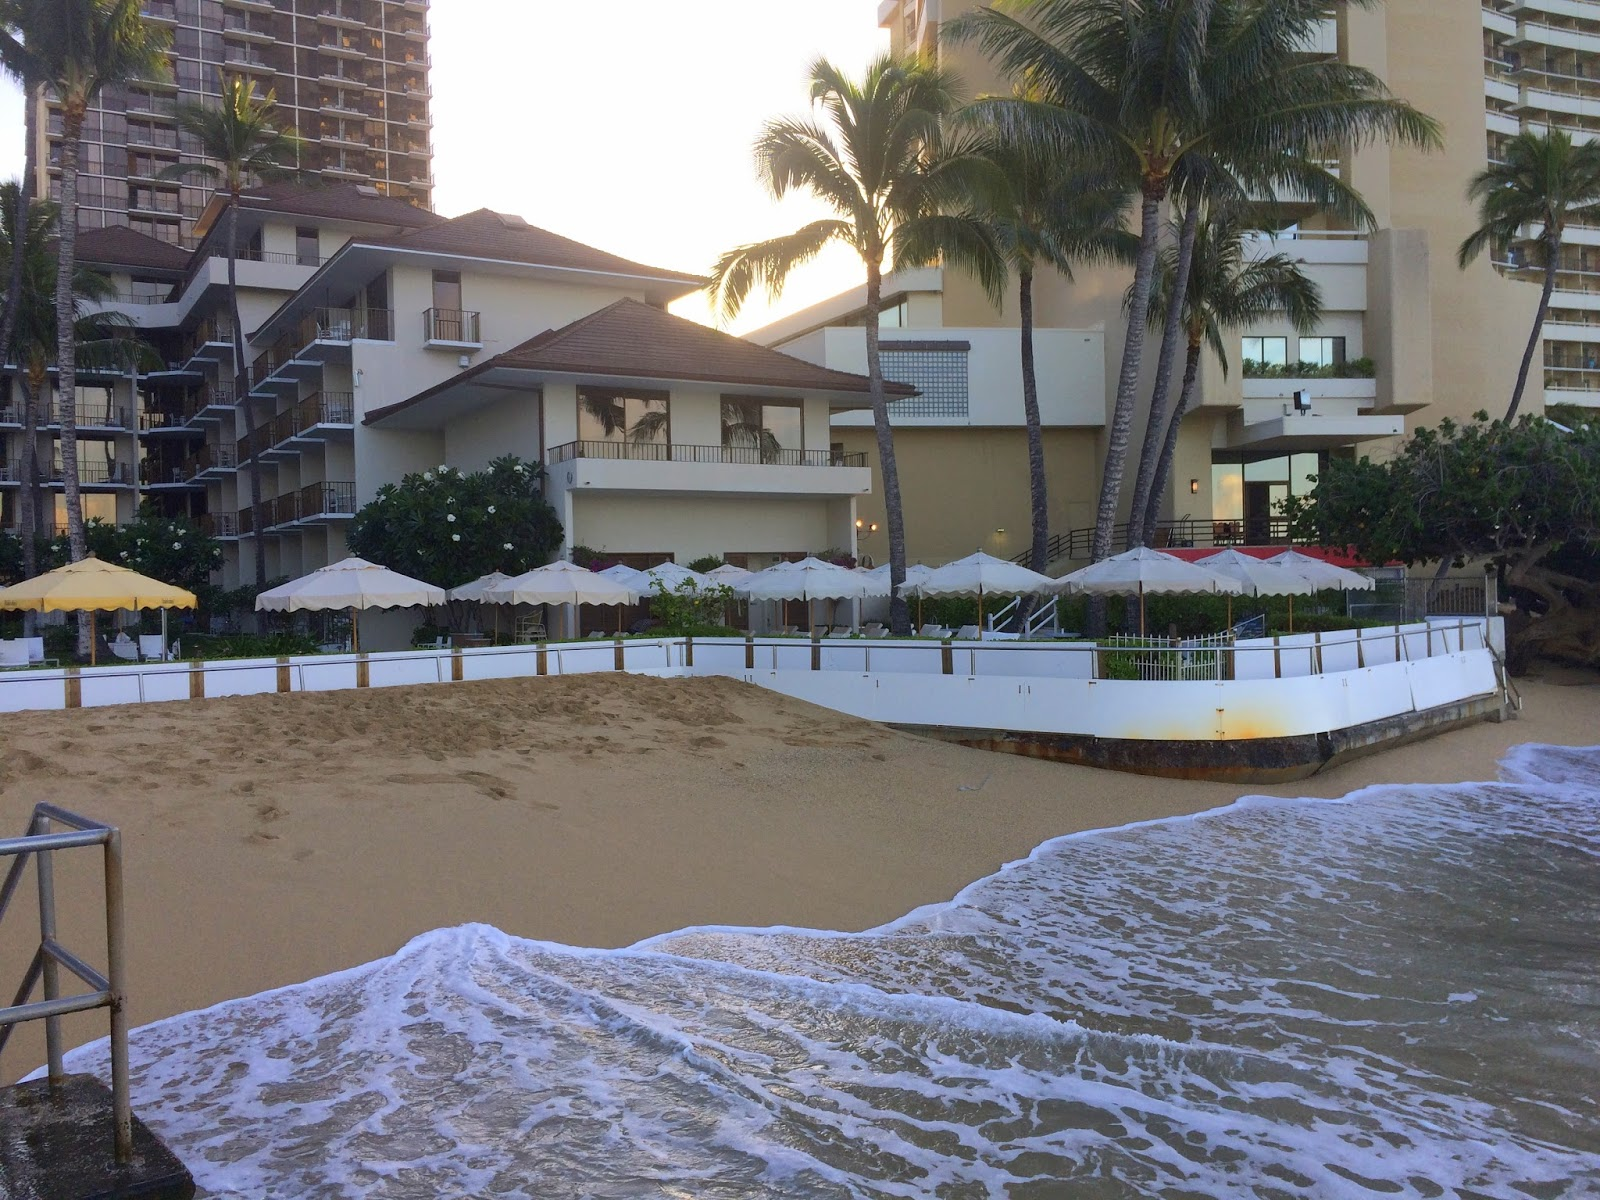 Aloha From Hawaii Low Tide High Tide And Now King Tide